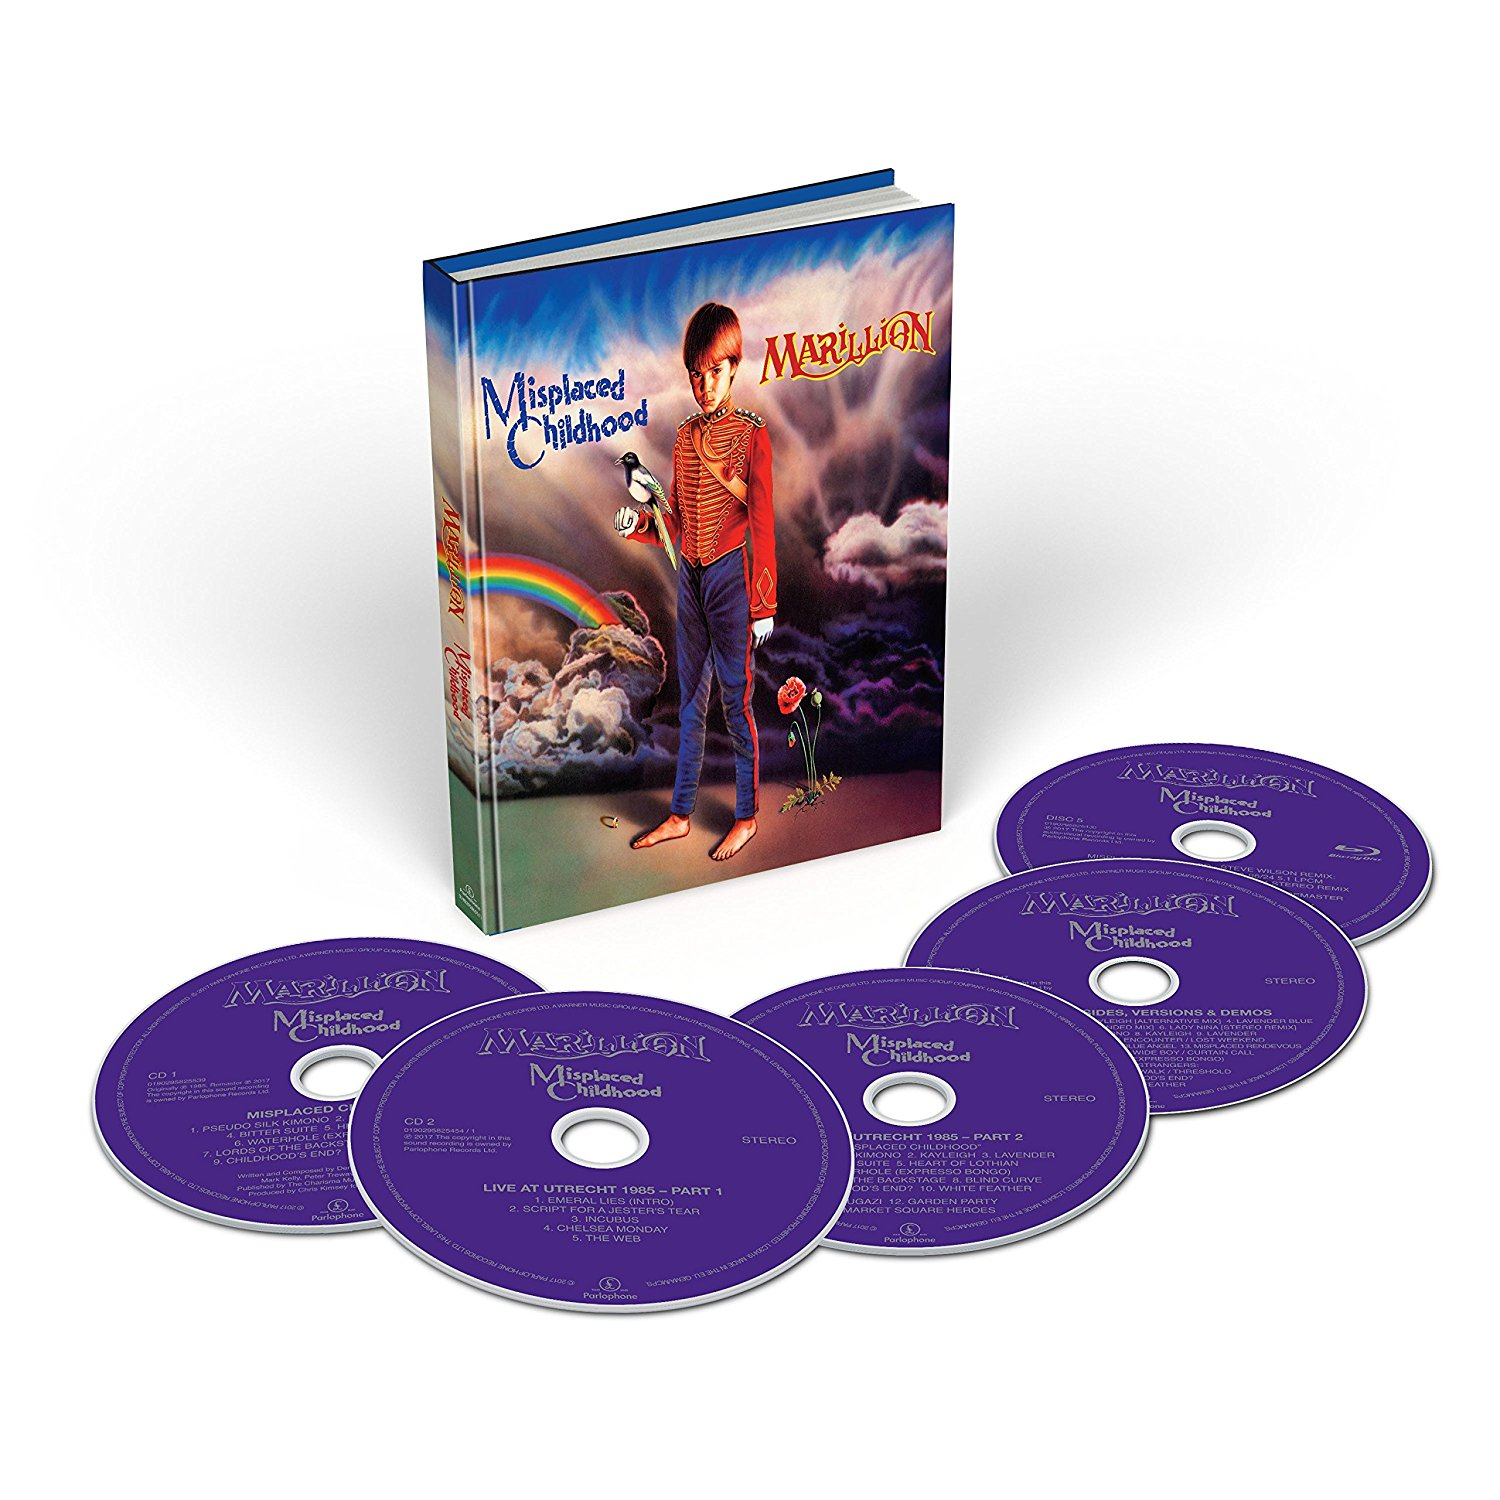 Marillion: Misplaced Childhood -  Warner Music 4-CD + Multichannel Blu-ray Audio (586 688-4)